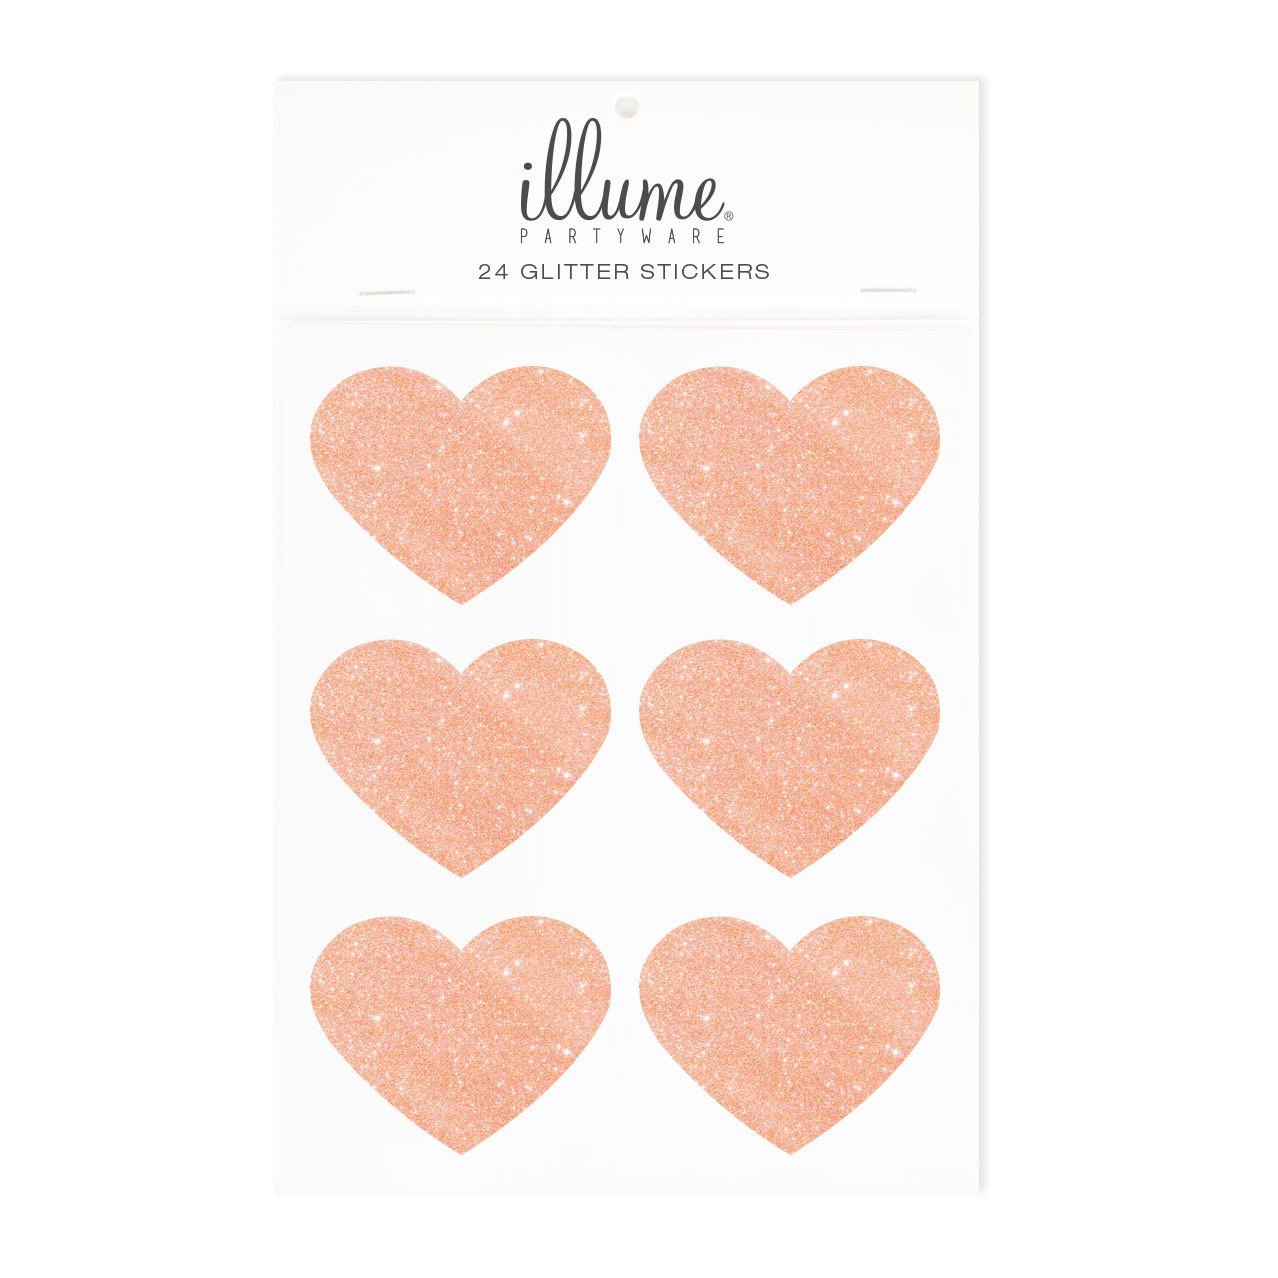 Rose Gold Glitter Heart Sticker Seals illume design